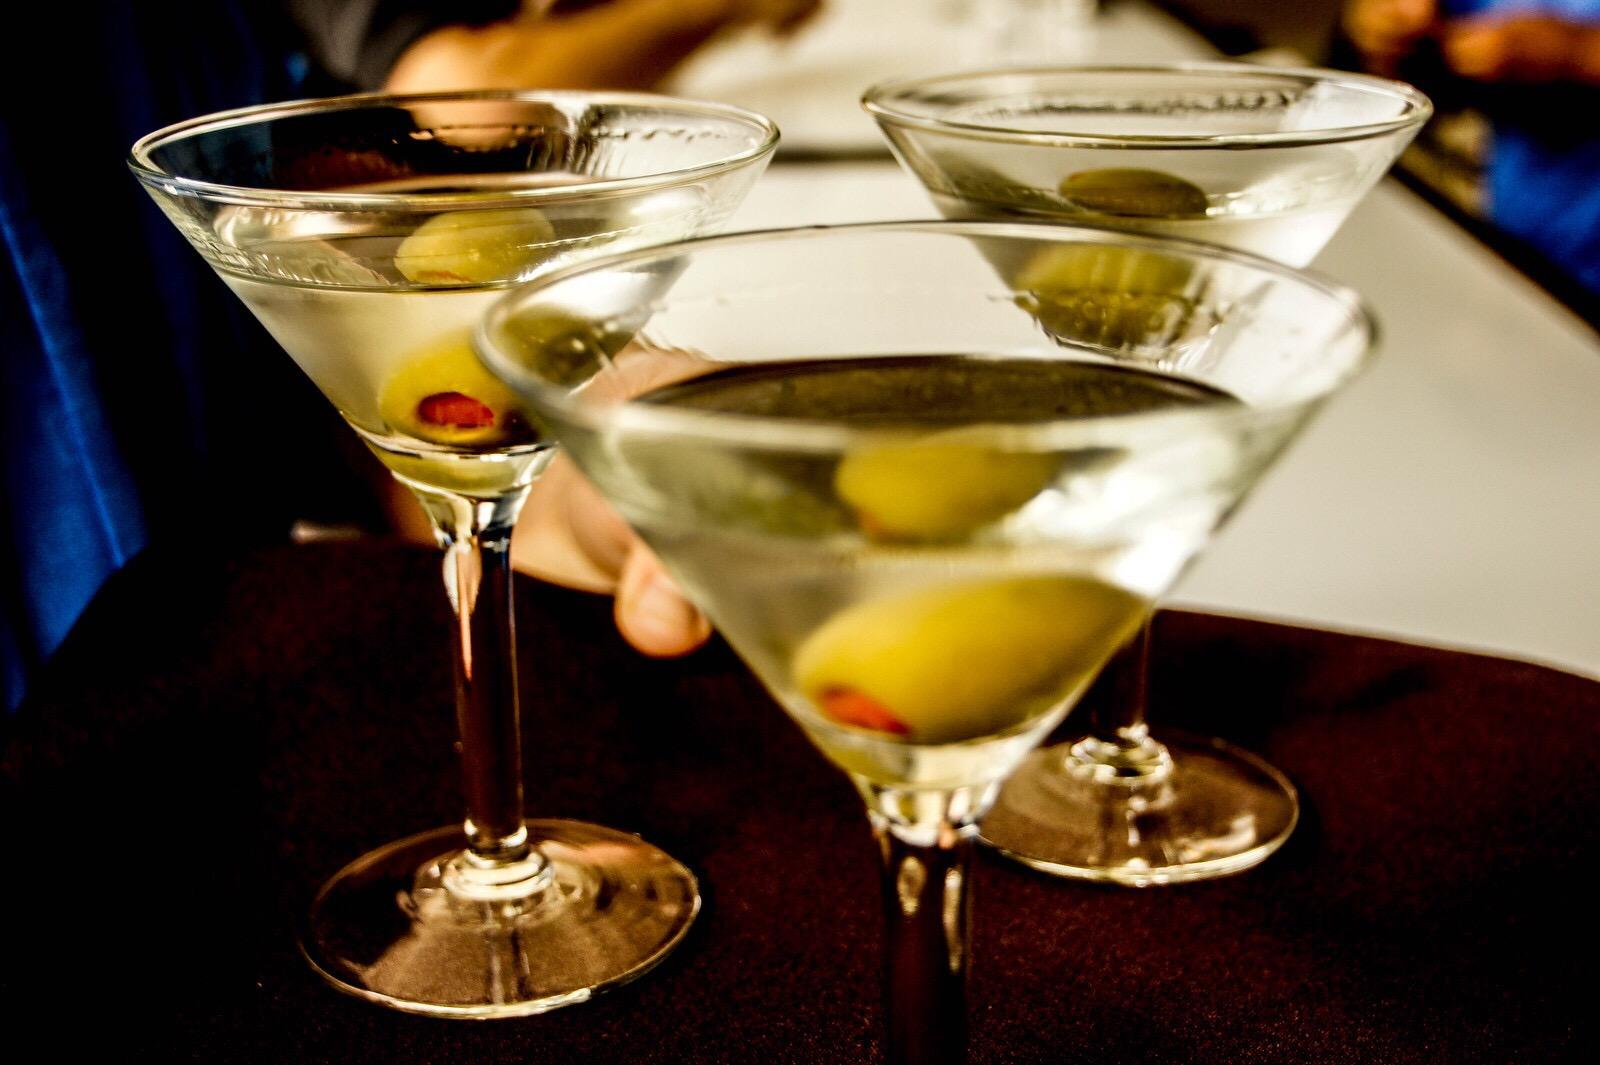 Music + Martinis at the Bracket Room